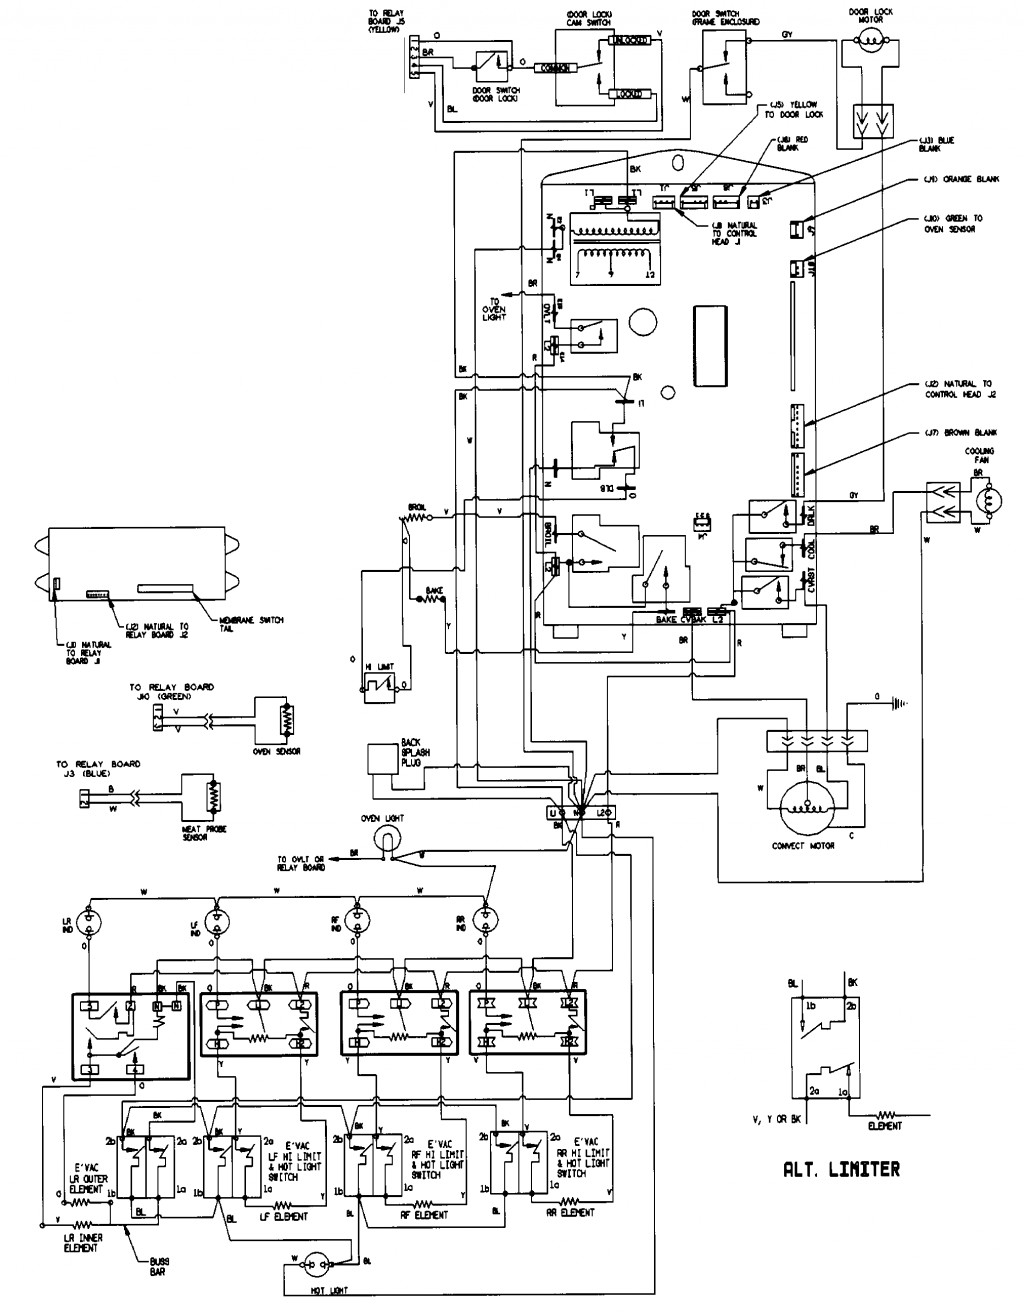 Diverting Golf 4 Ac Wiring Diagram Amana Rv Stove Parts Diagrams Online Fullsize Of